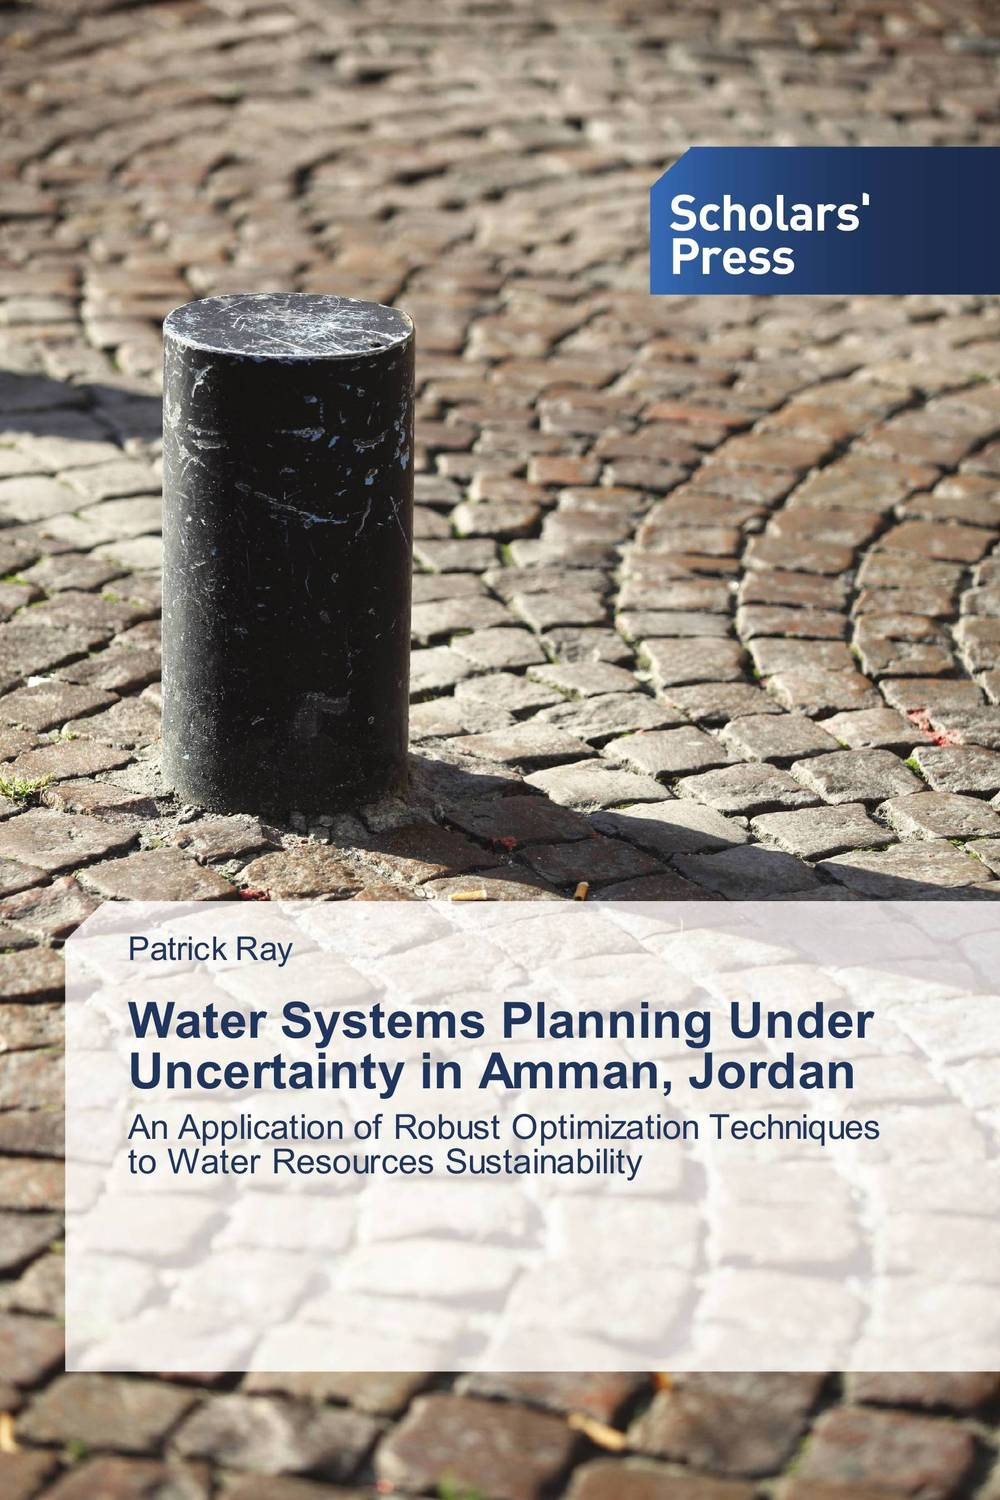 Water Systems Planning Under Uncertainty in Amman, Jordan point systems migration policy and international students flow